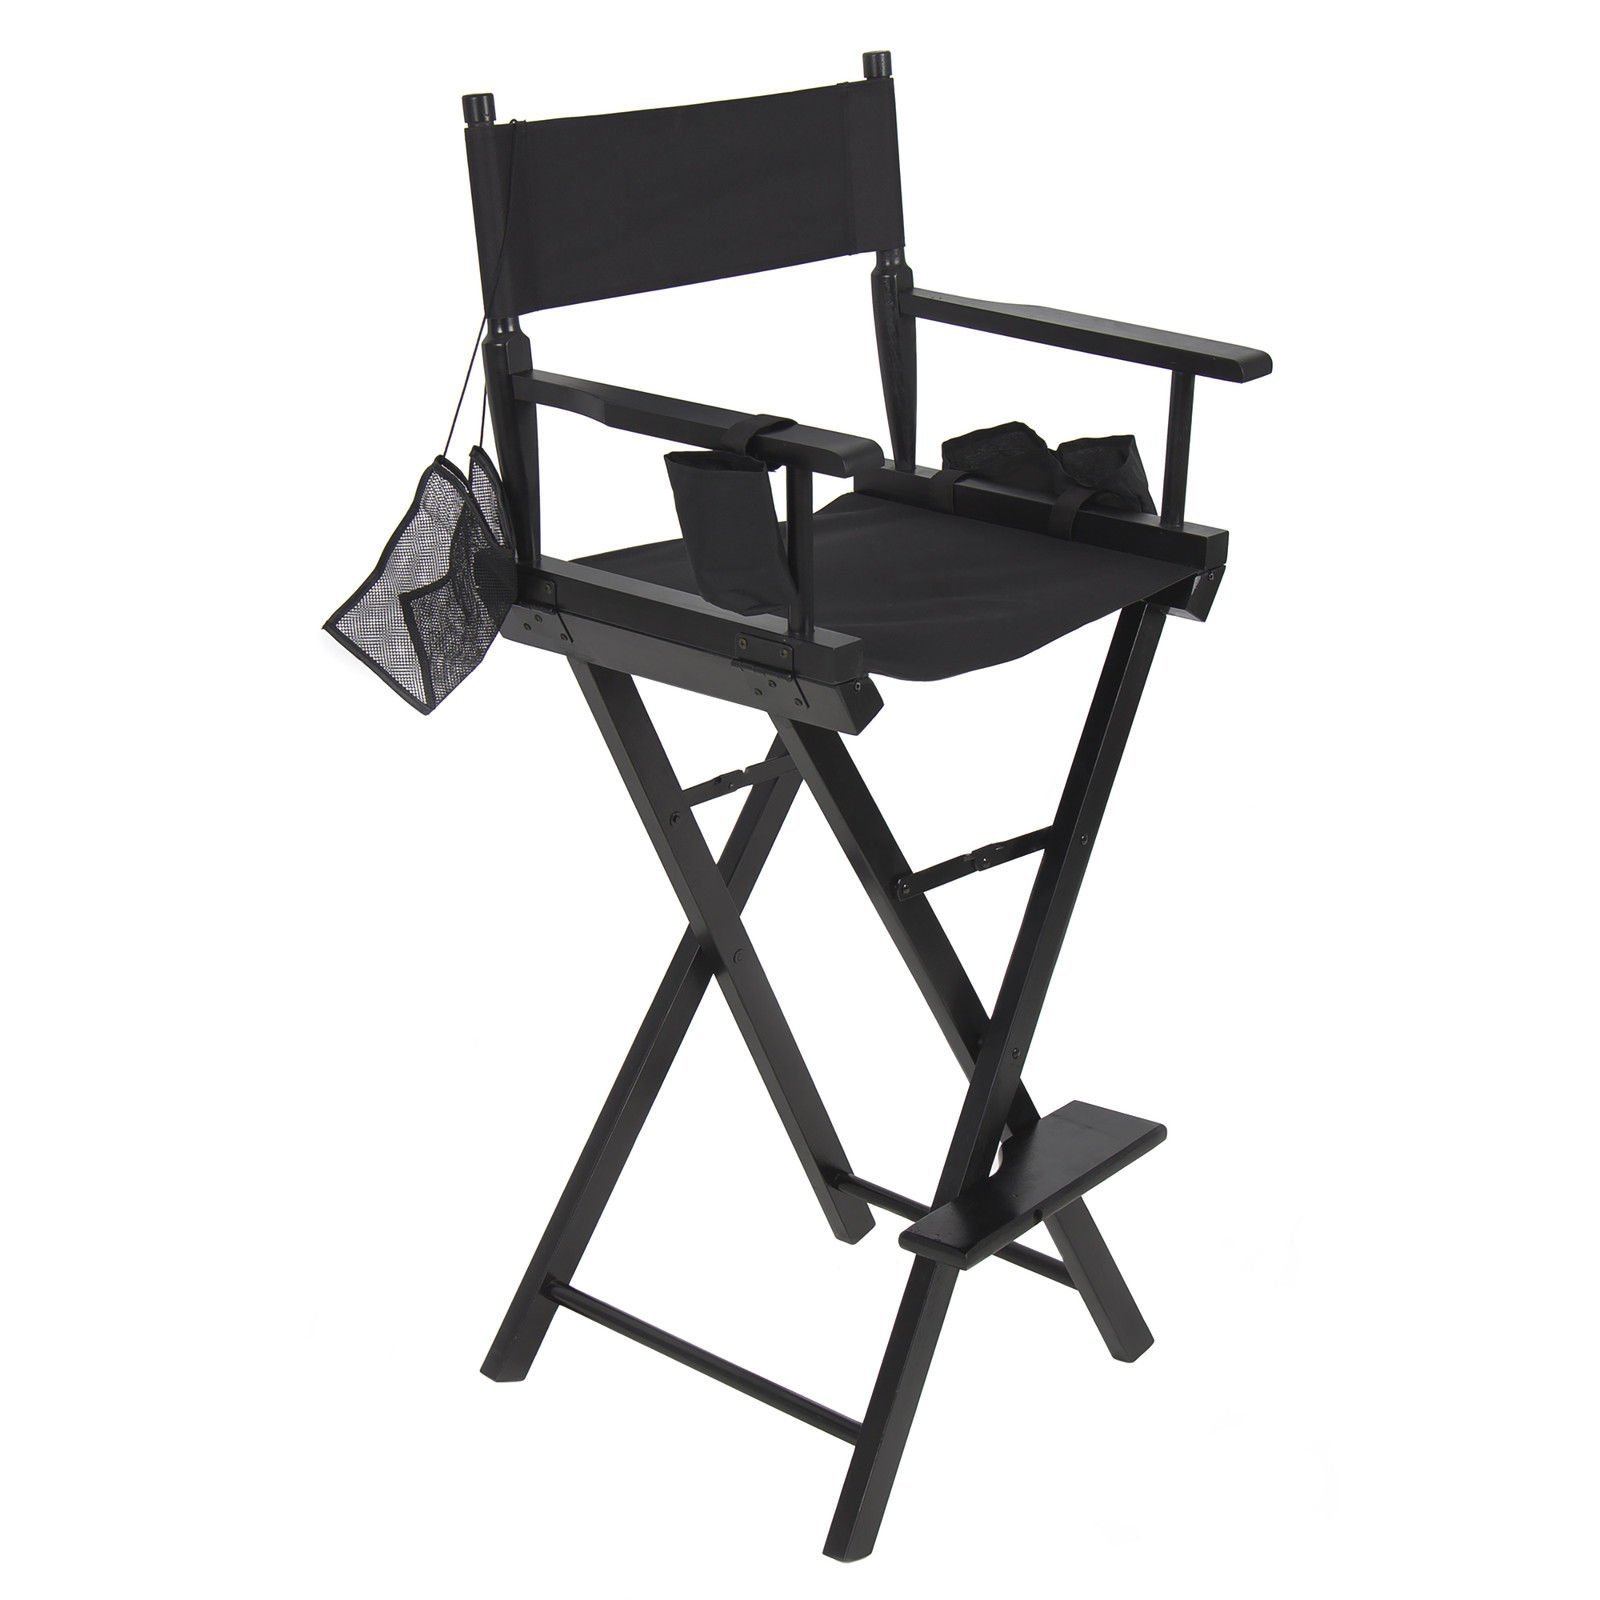 LA BOVA Makeup Artist Director's Chair Light Weight and Foldable Professional